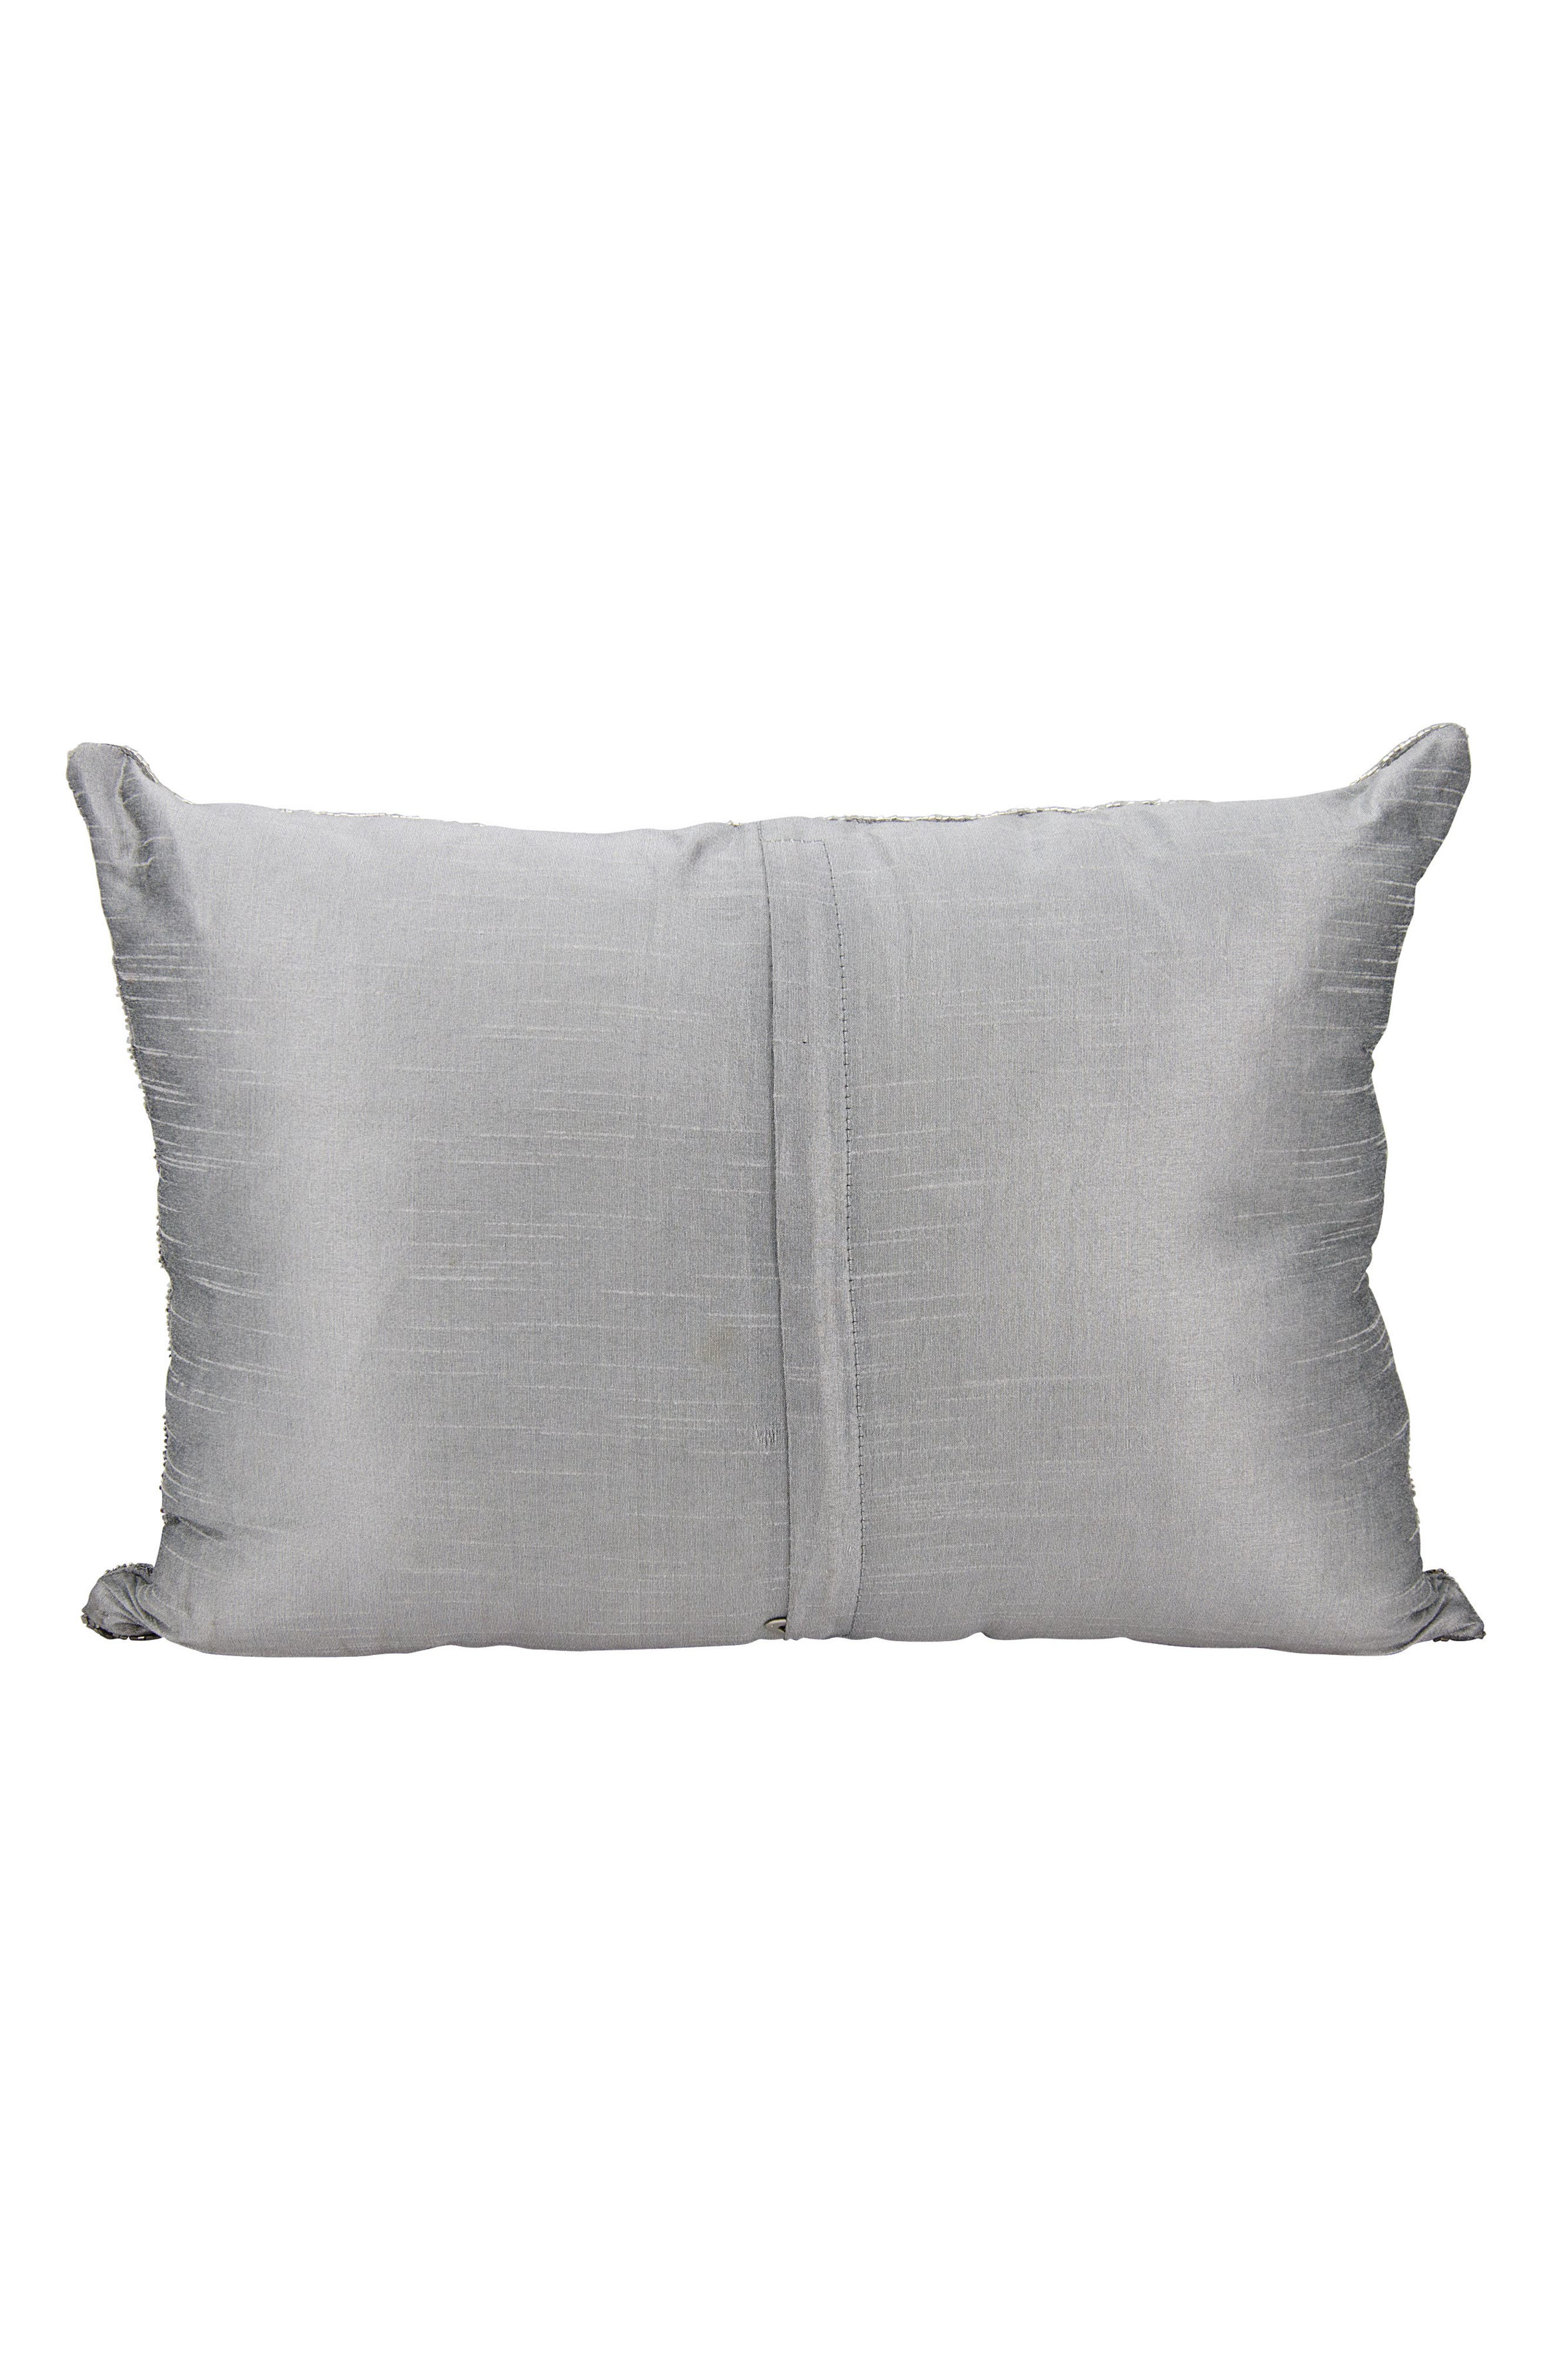 Beaded Accent Pillow,                             Alternate thumbnail 2, color,                             041